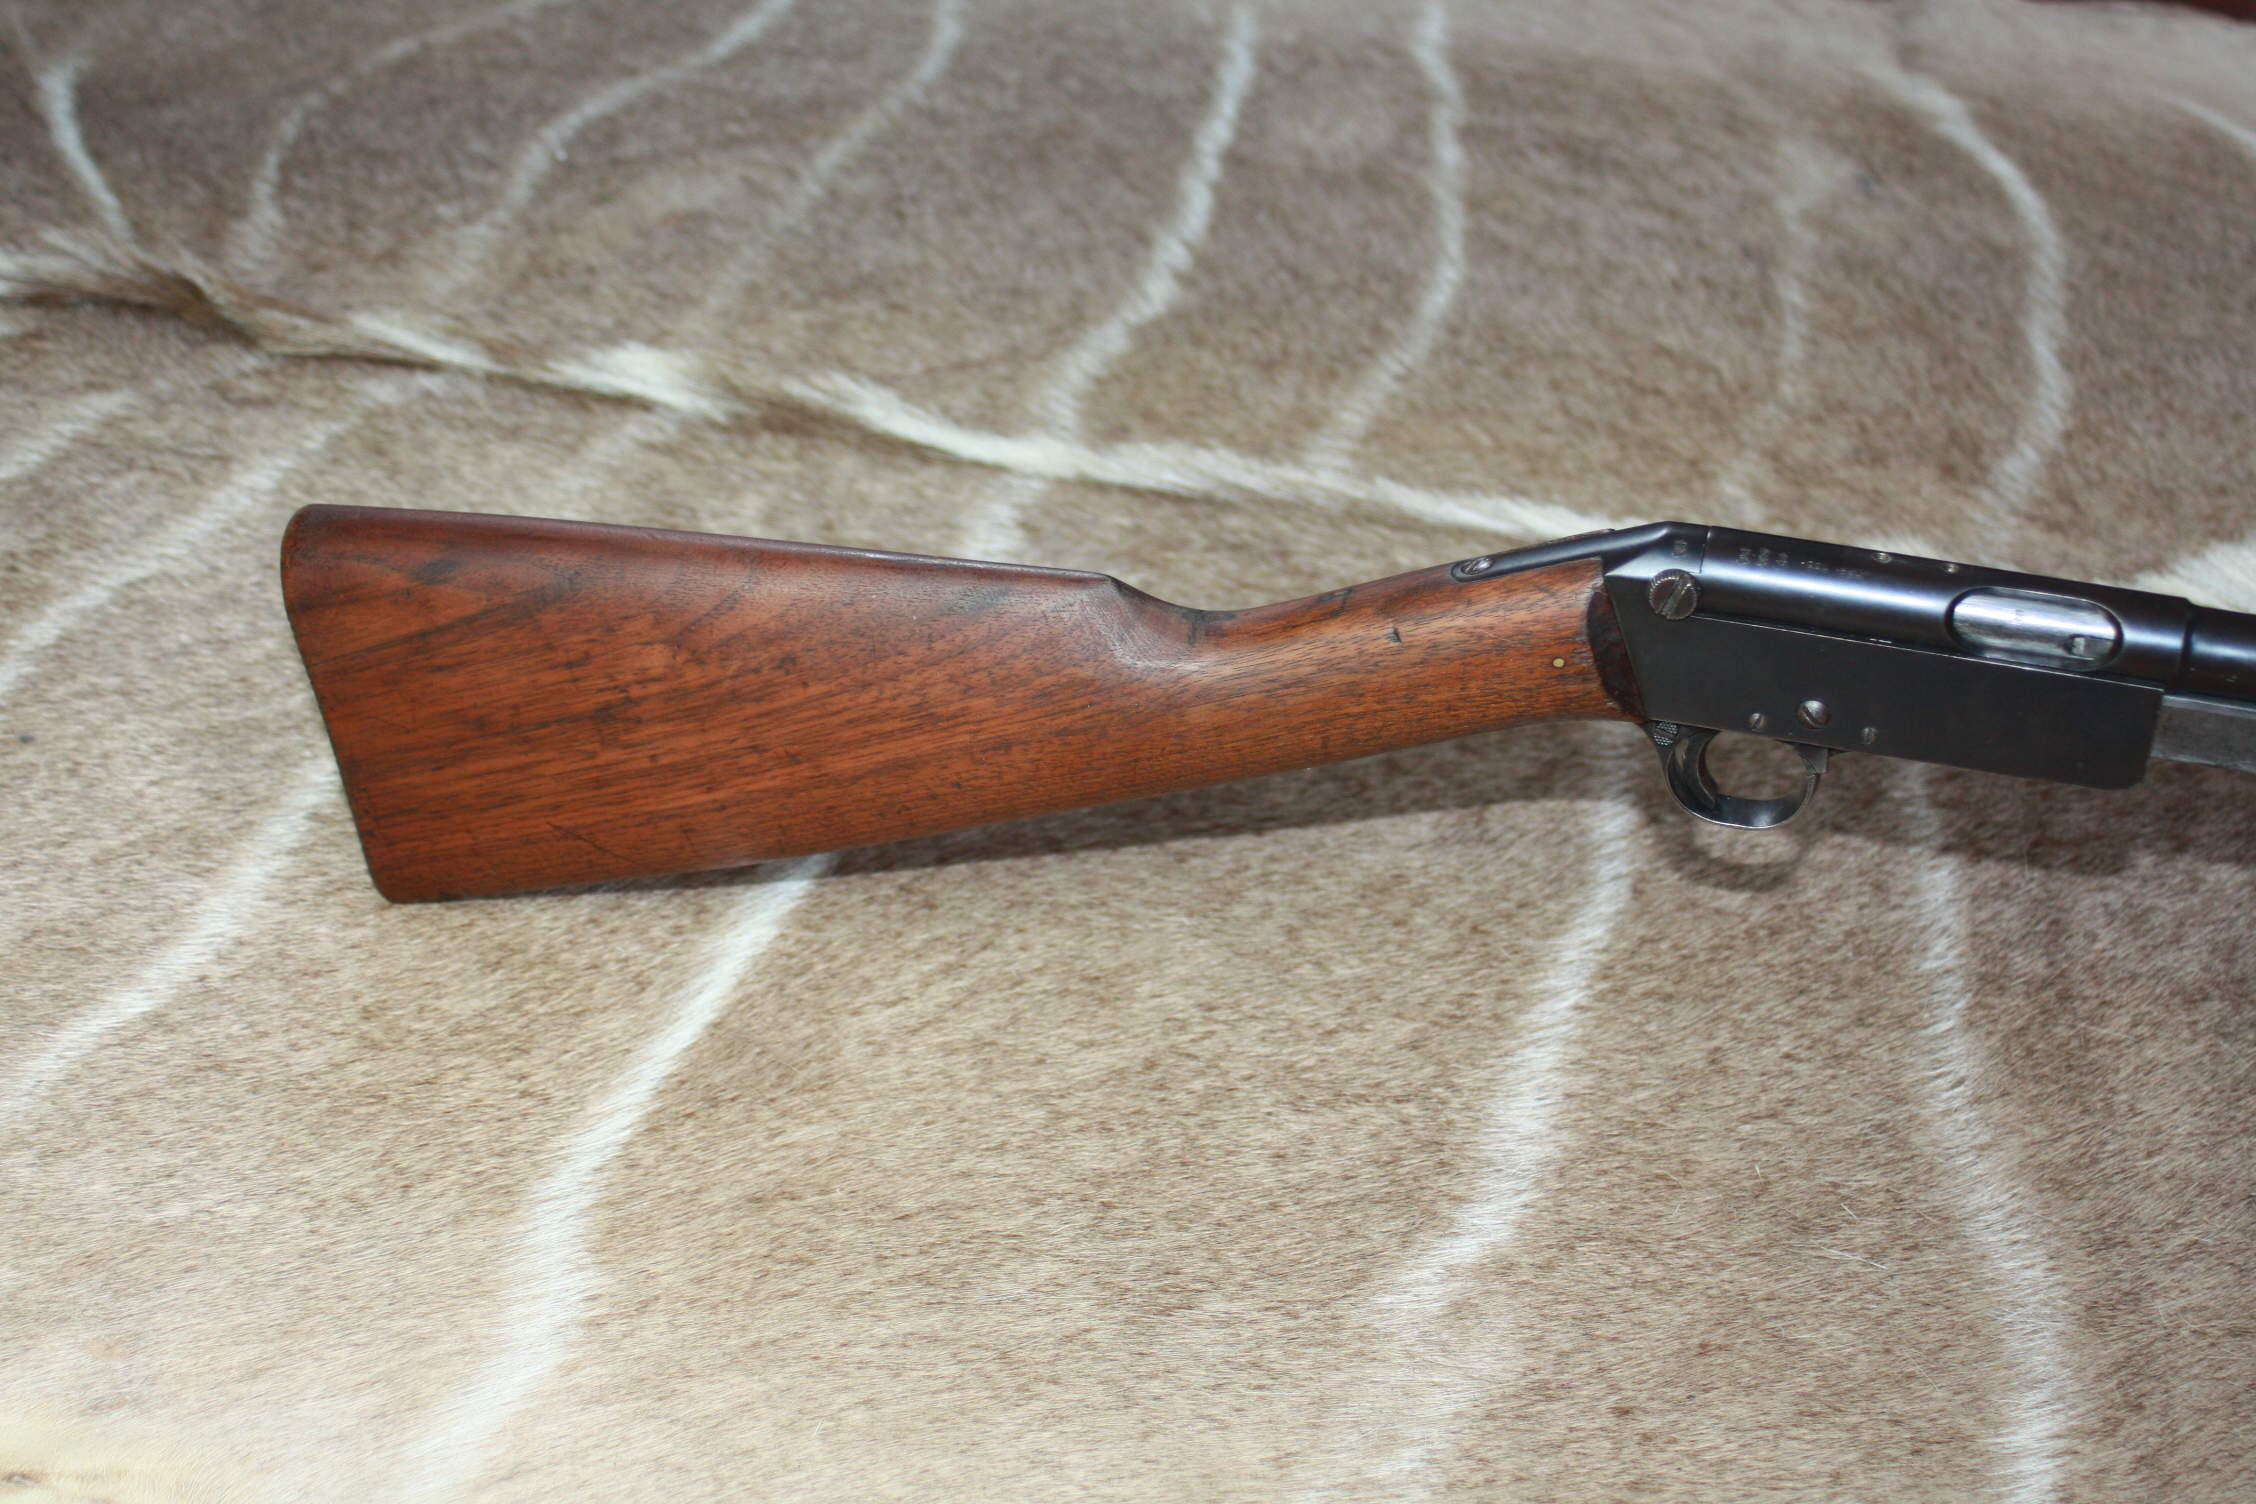 B.S.A. .22LR Pump Action Sporting Rifle. Shoots .22 LR and .22 Short.